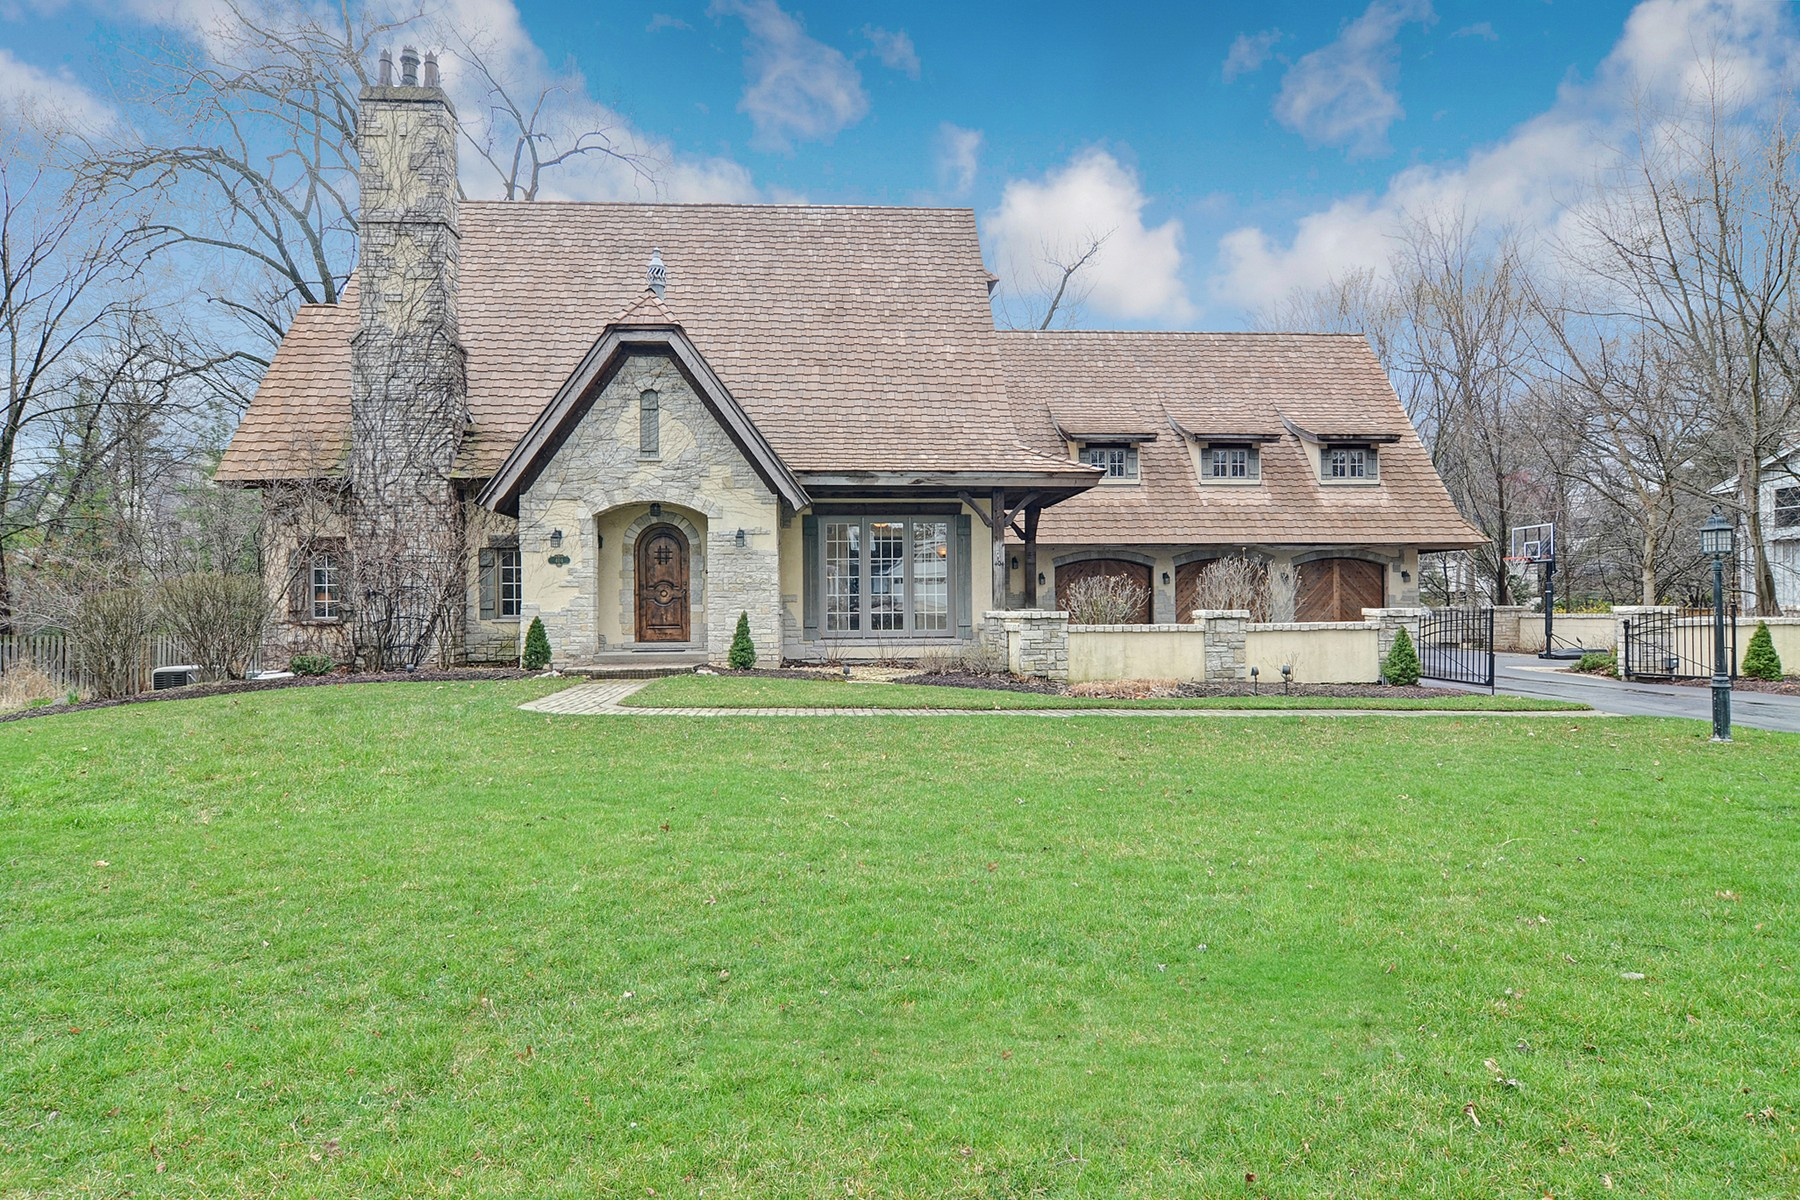 Single Family Home for Sale at Birchwood Road 404 Birchwood Rd Hinsdale, Illinois, 60521 United States